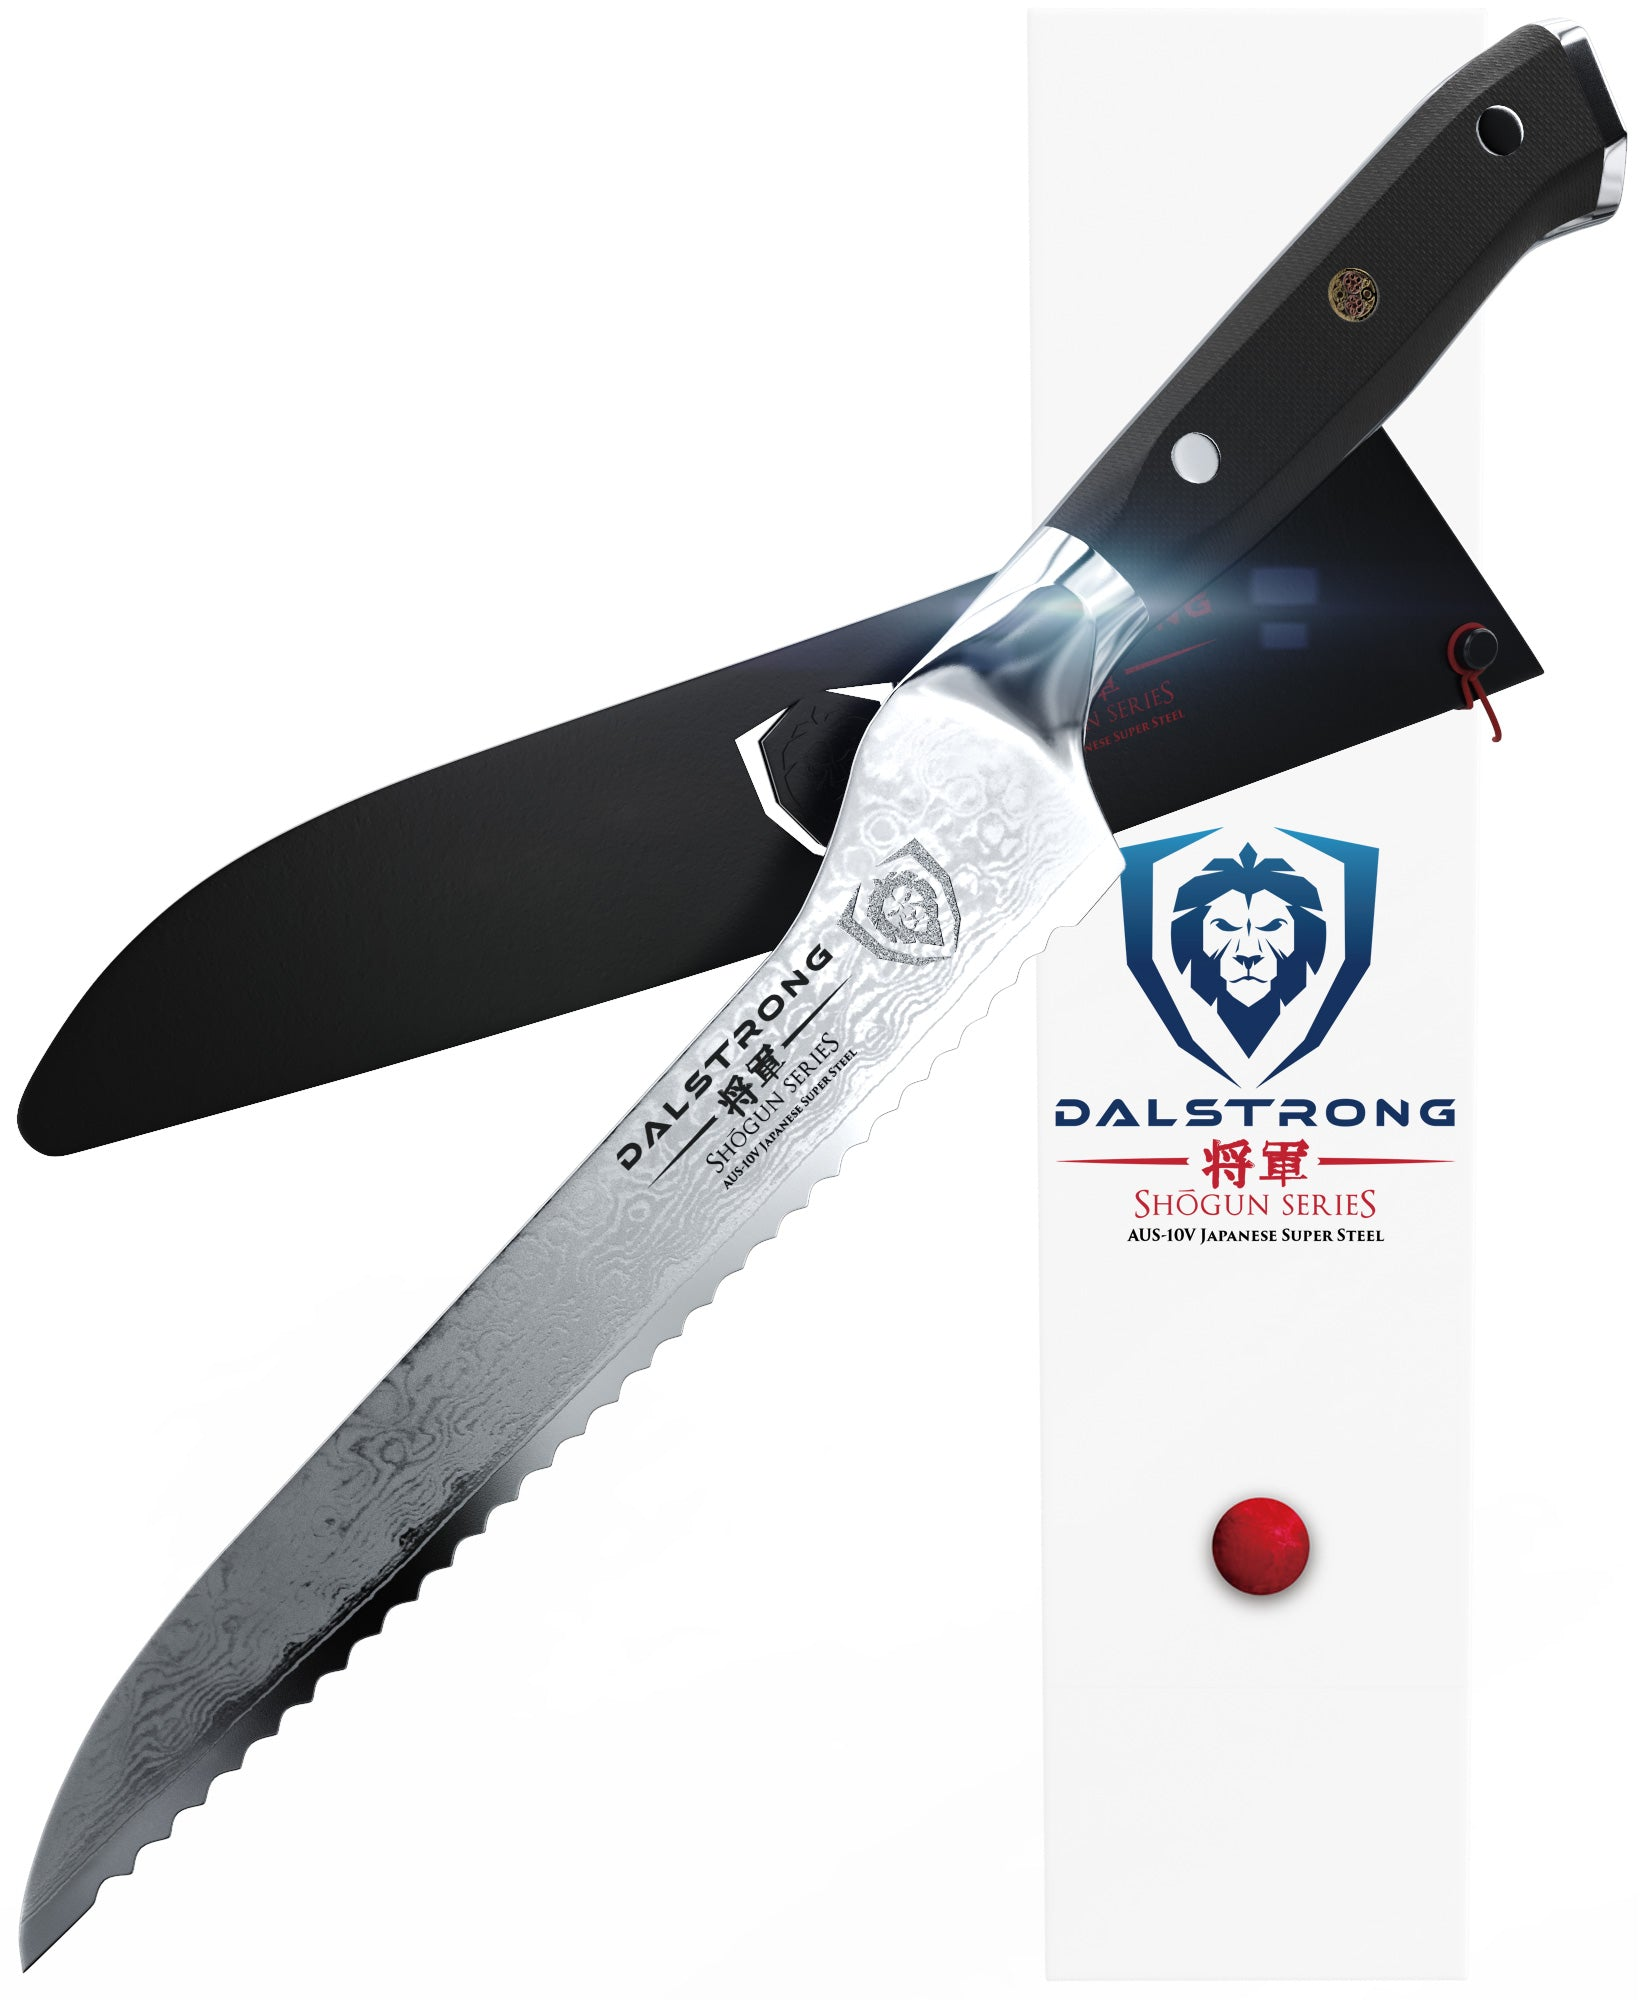 Shogun Series Serrated Offset Knife